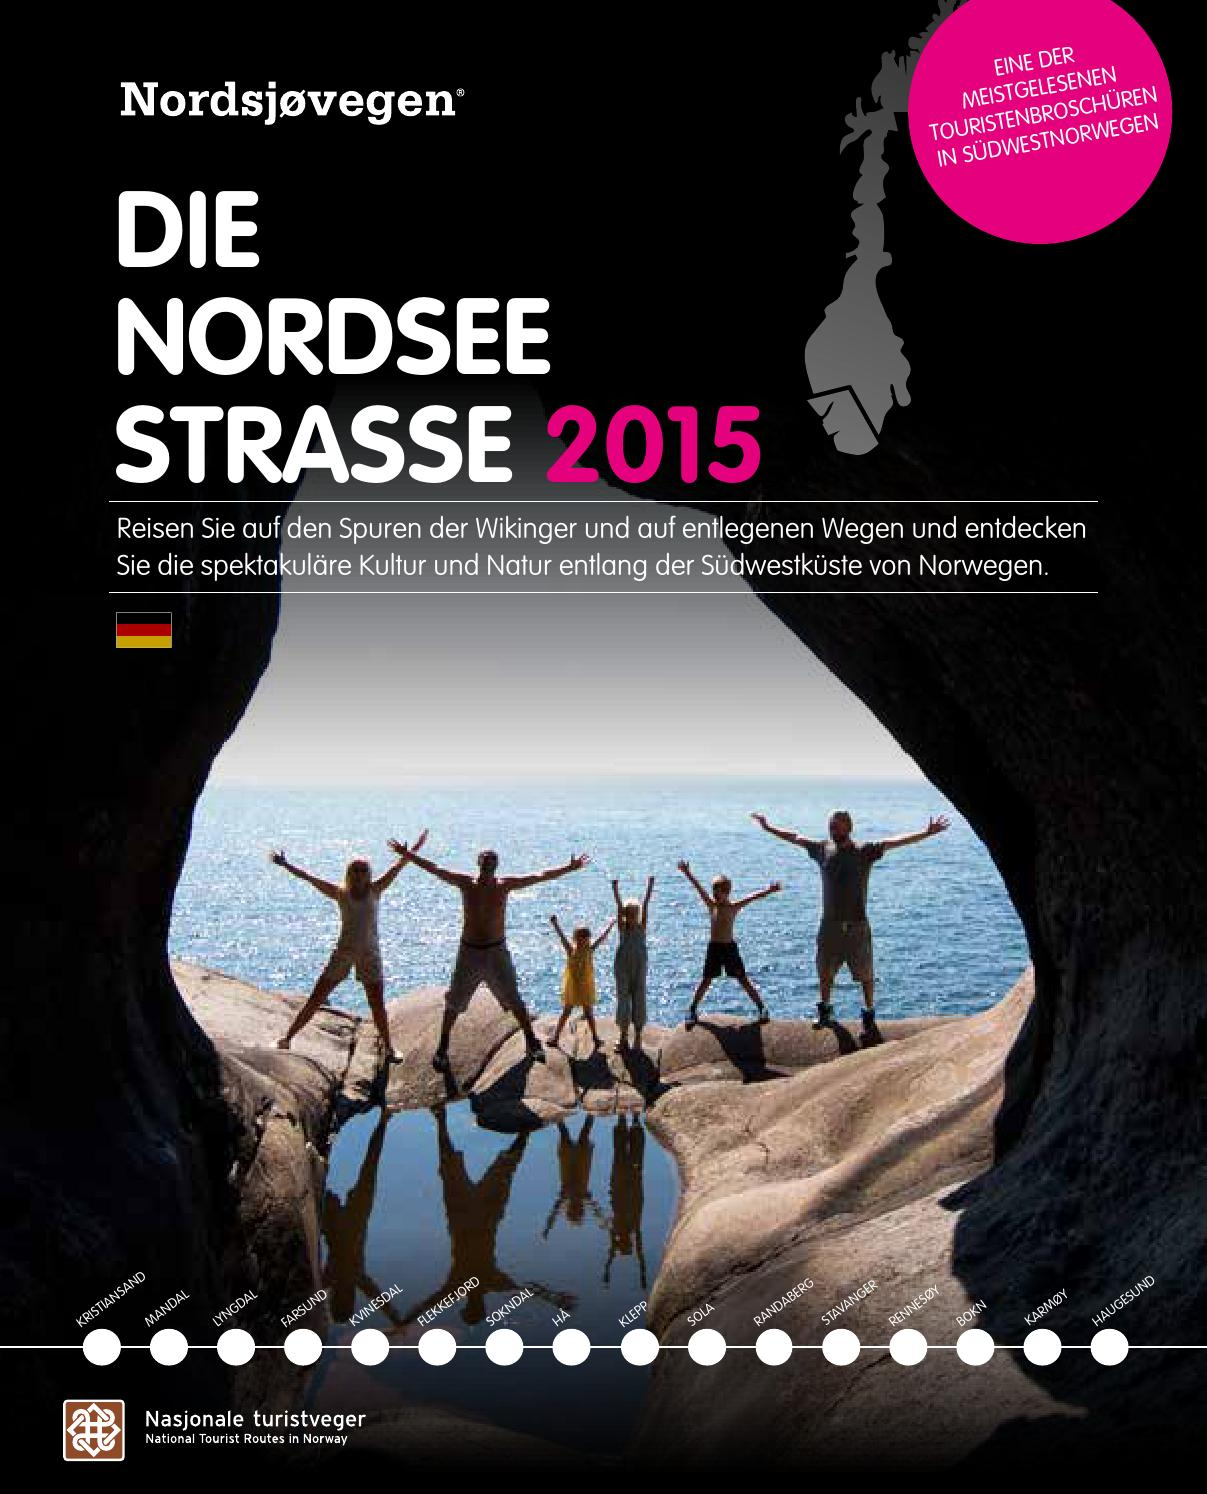 DIE NORDSEESTRASSE 2015 by Gnizt Strategisk Design AS - issuu